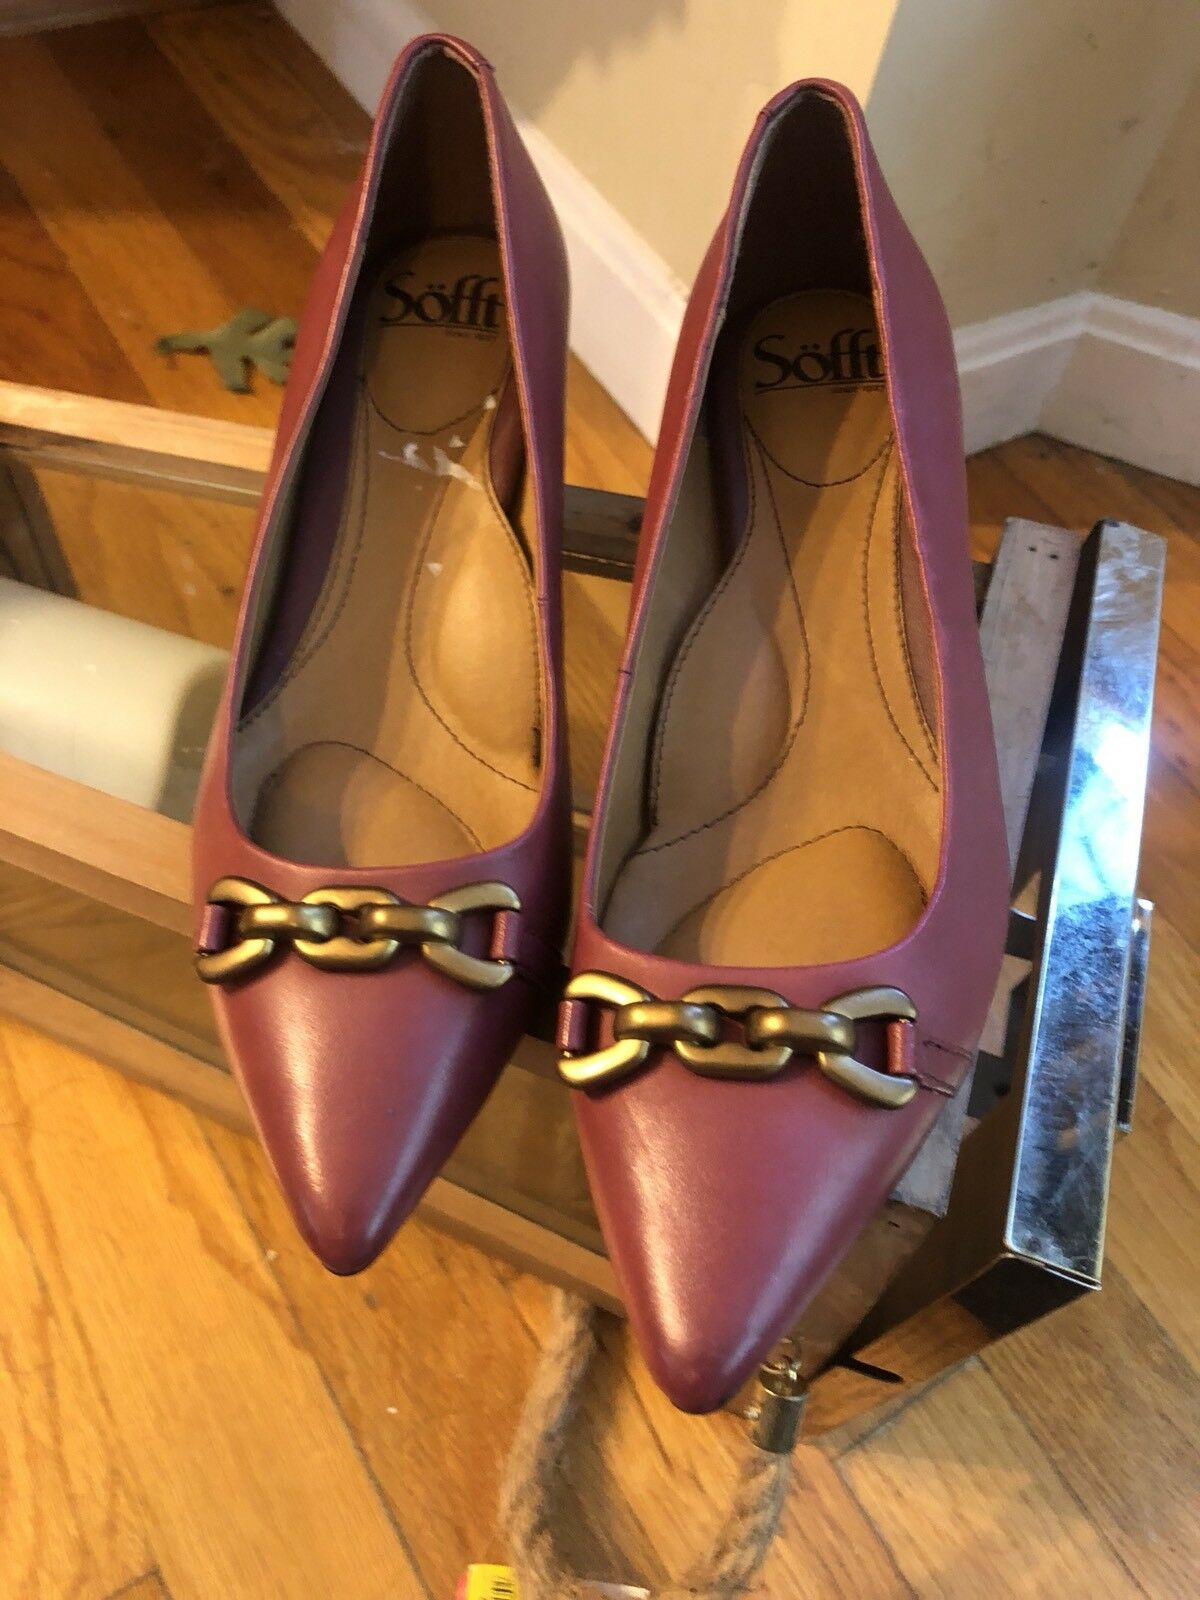 Sofft Genuine Leather Pointy Toe Heel shoes Burgundy Mauve